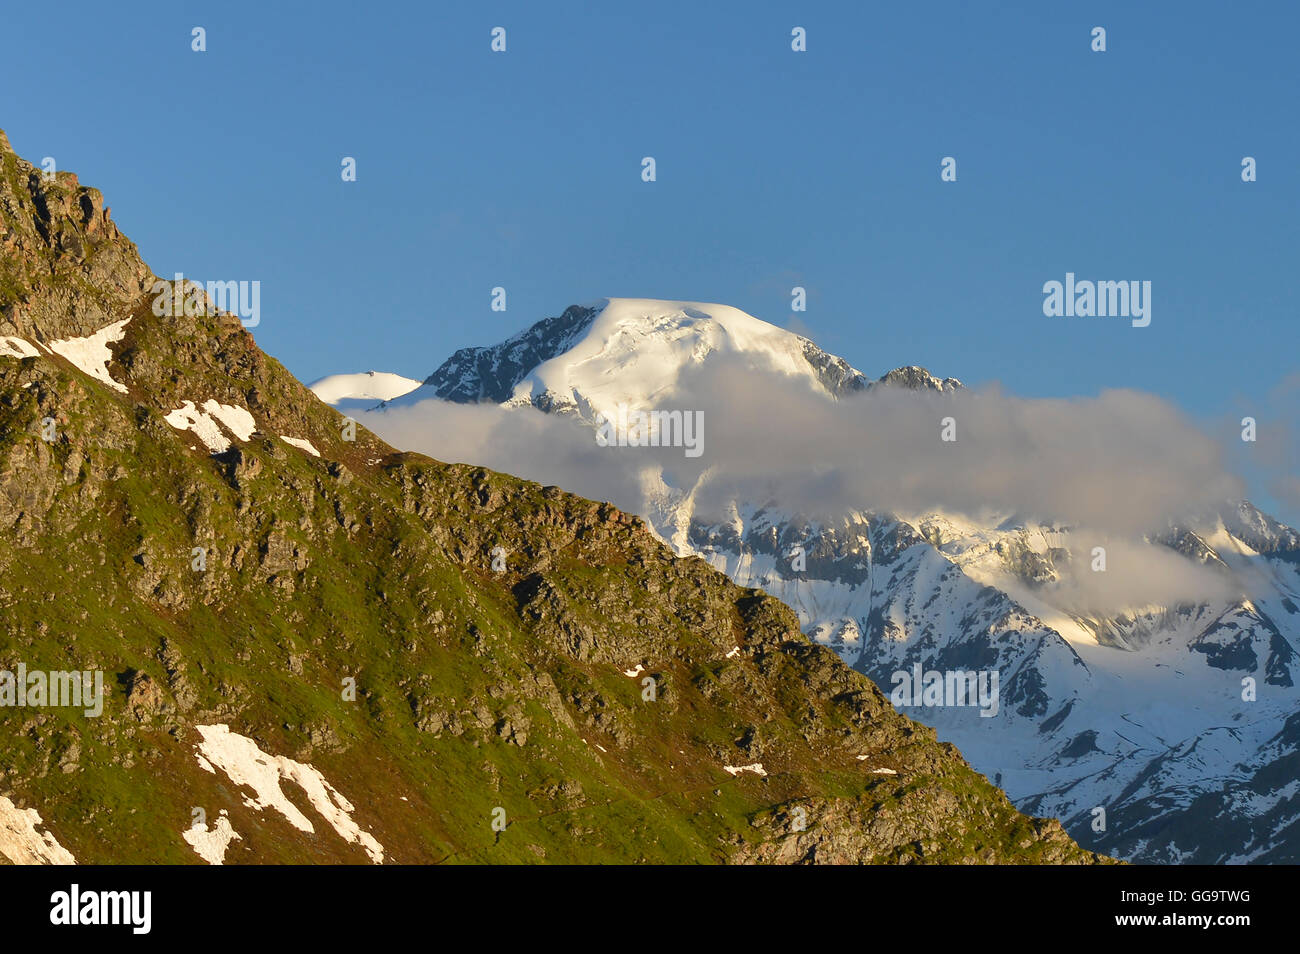 View of the Grand Combin from Cabane Mont Fort on the Haute Route, Val de Bagnes, Switzerland - Stock Image